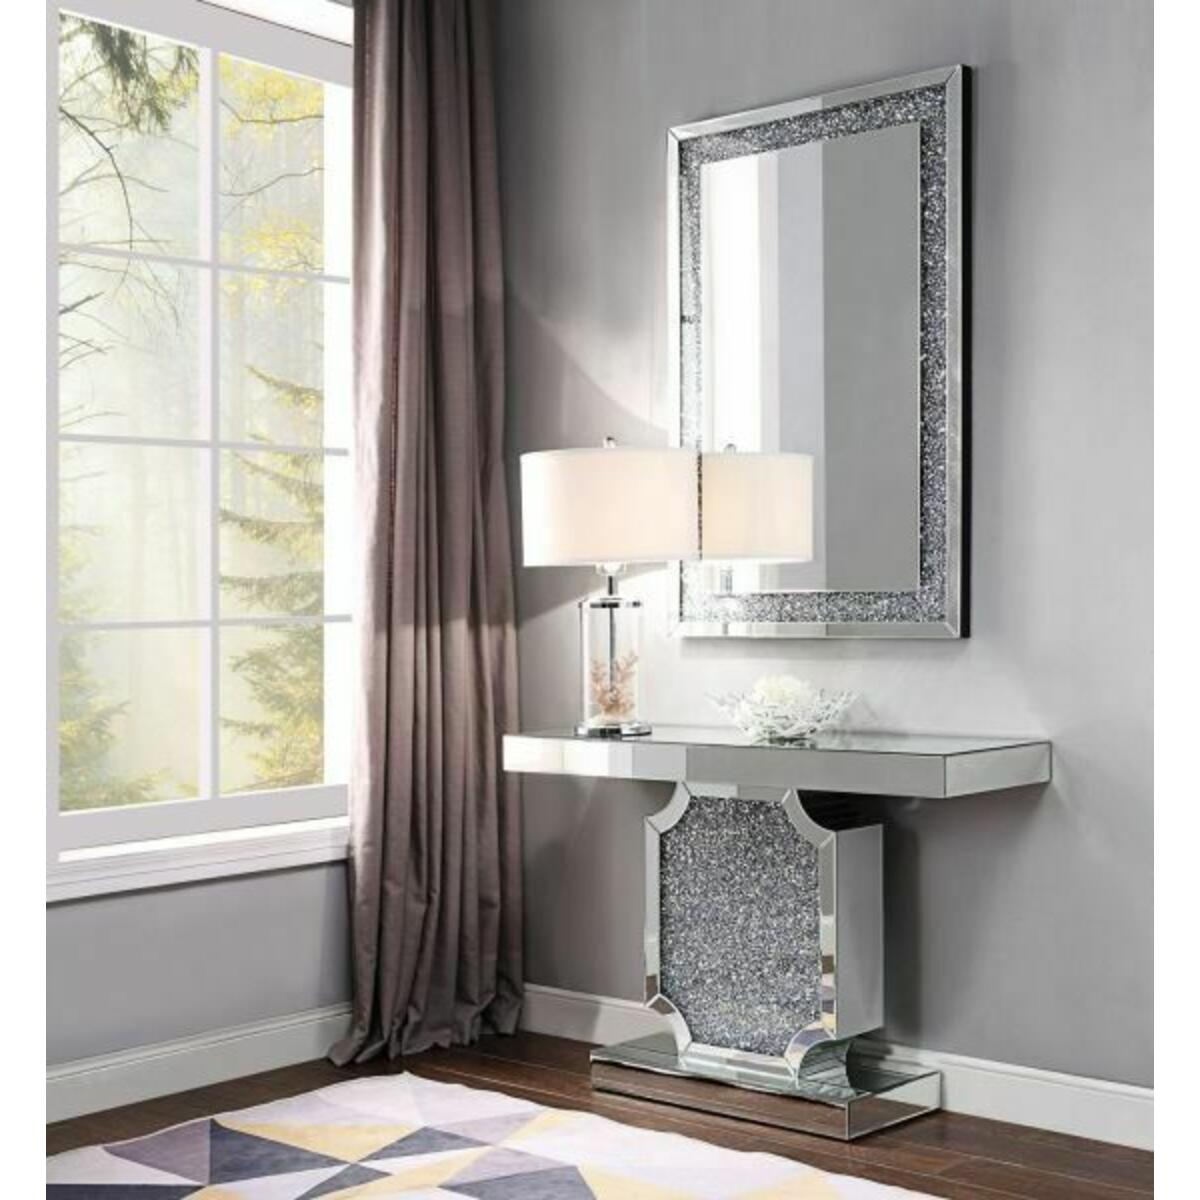 ACME Noralie Console Table - 90475 - Mirrored & Faux Diamonds